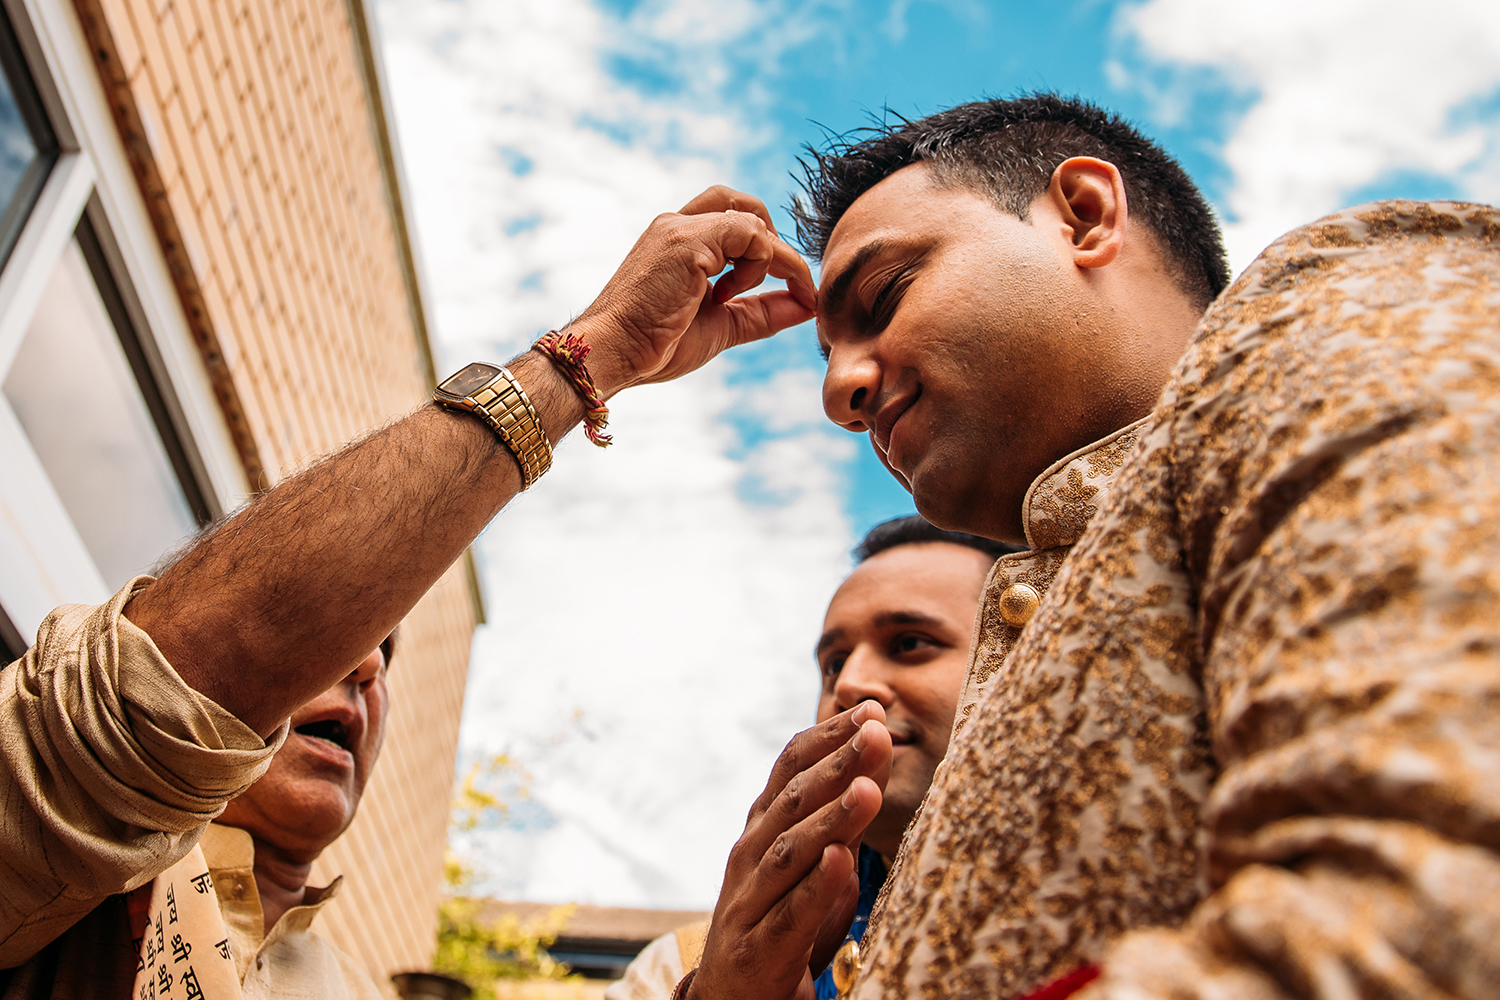 Groom having rice put on his forehead during his entrance